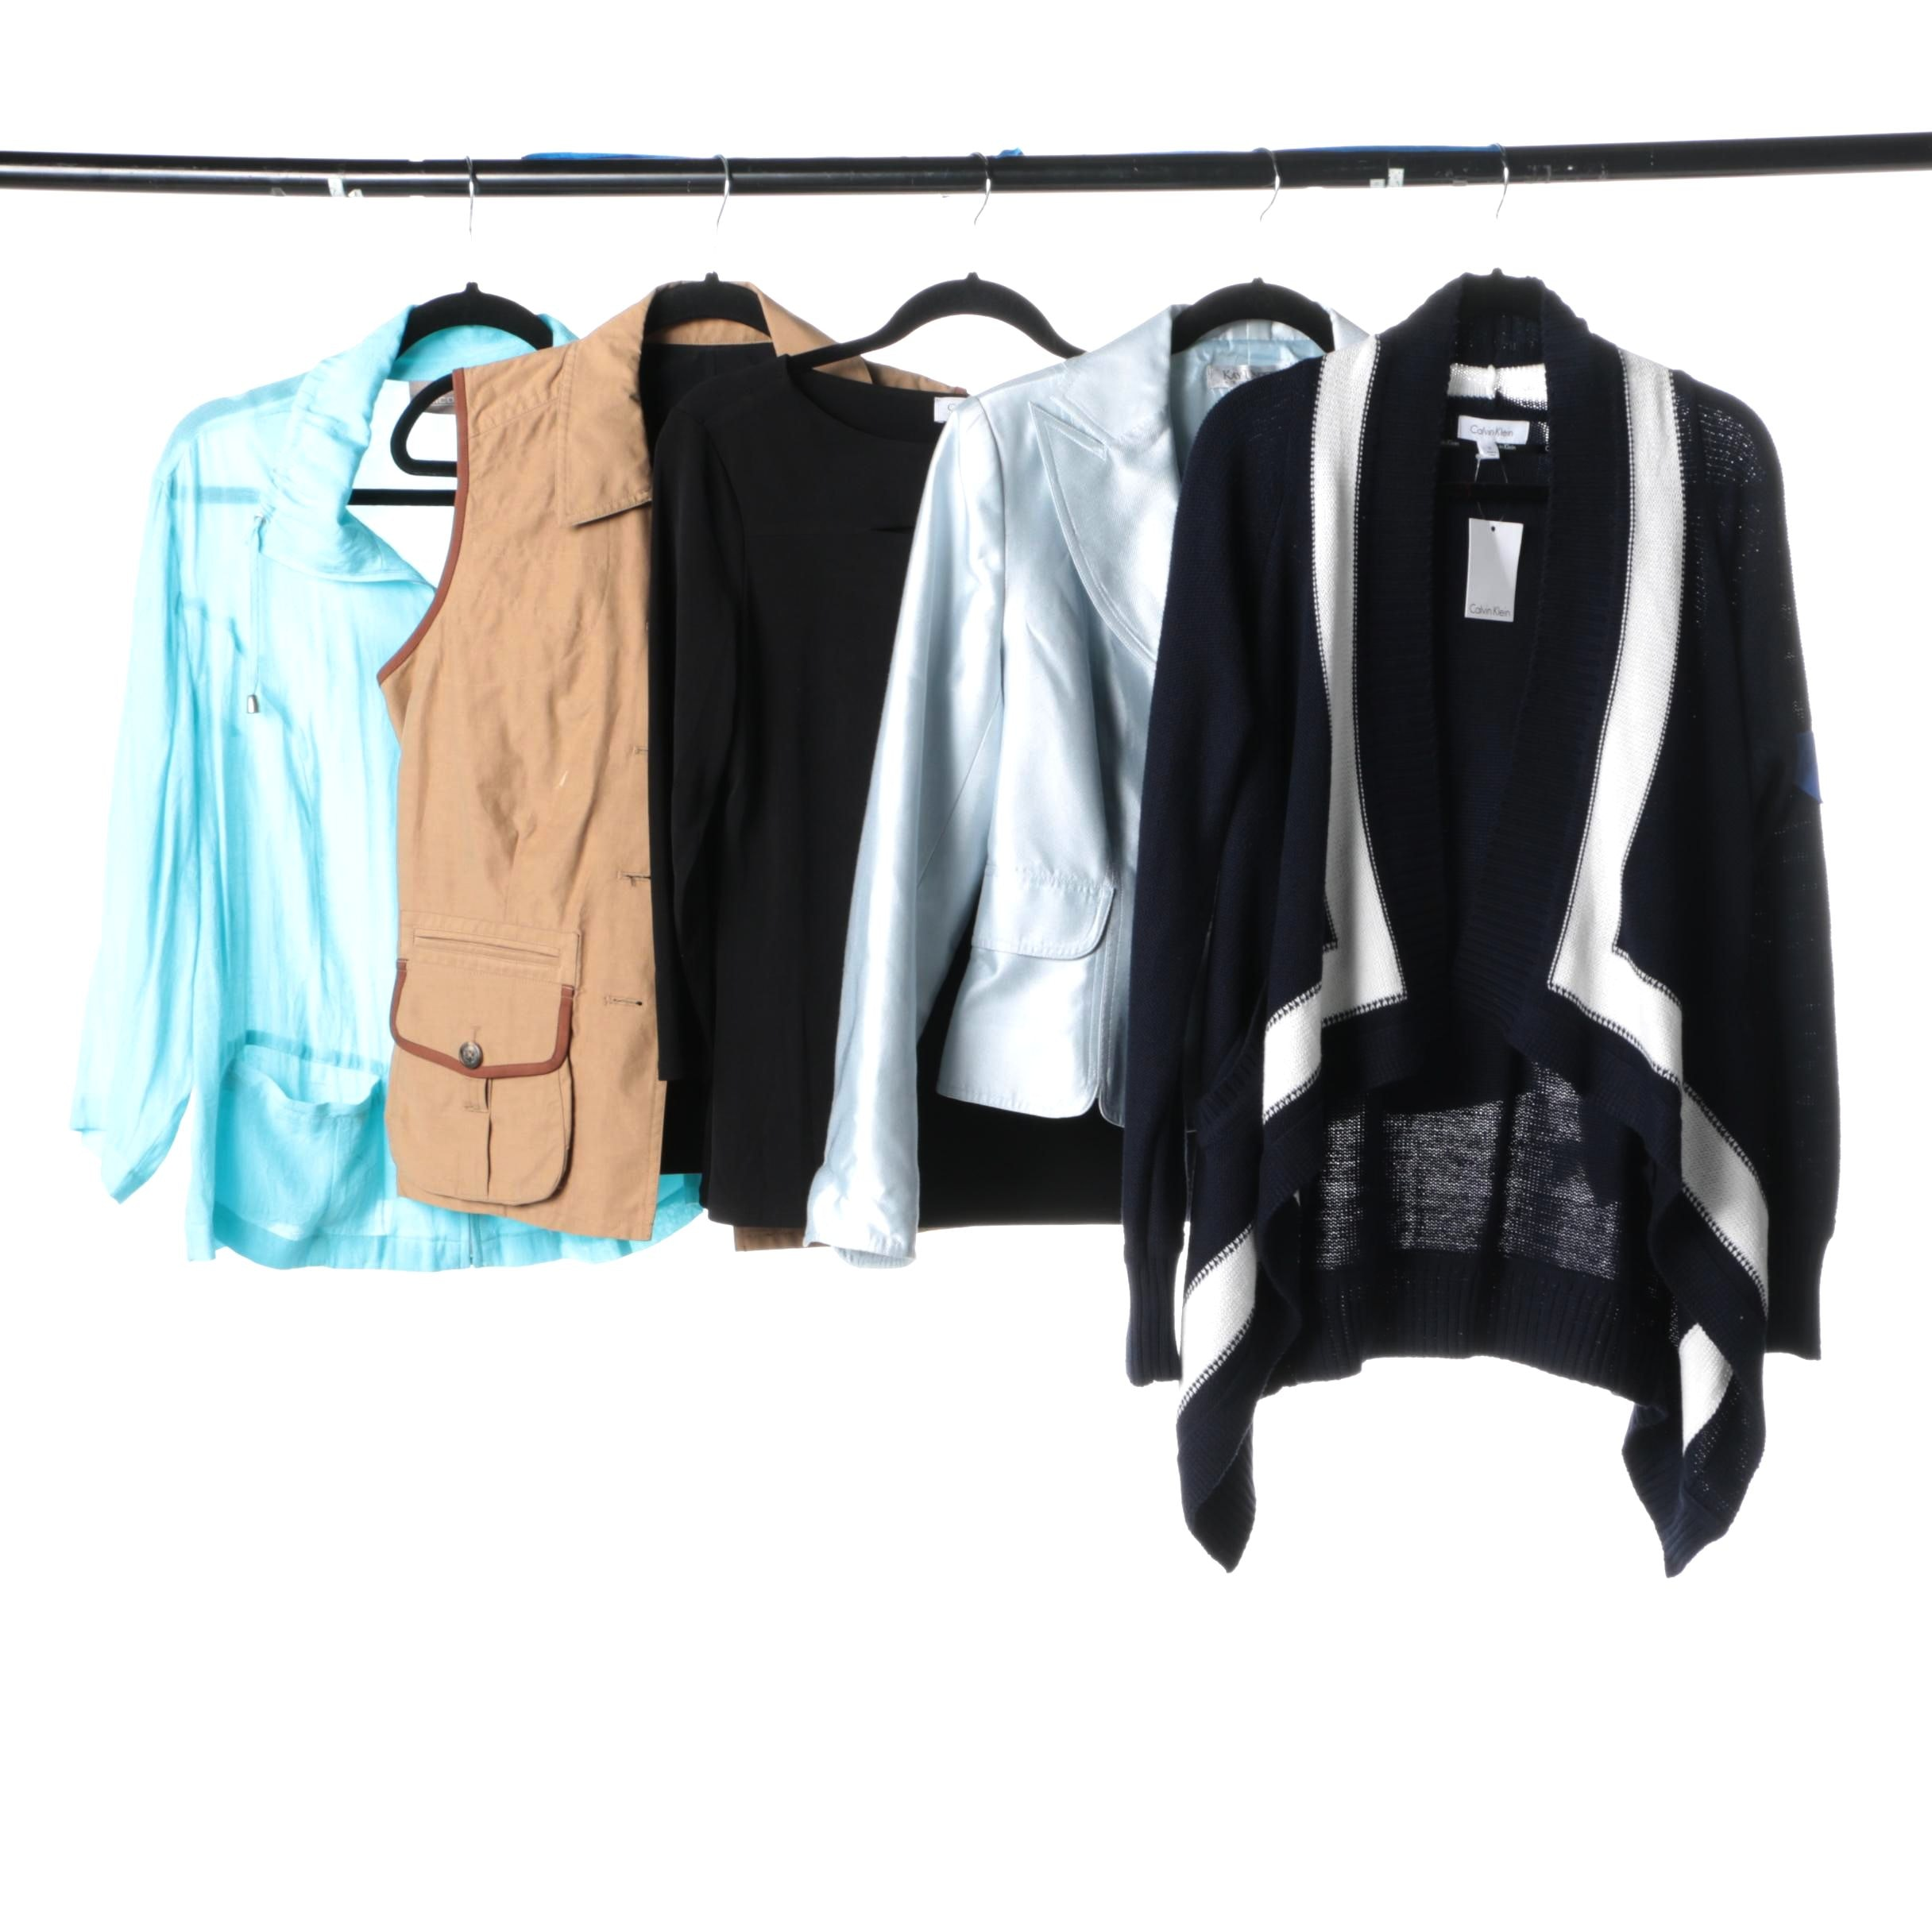 Women's Tops and Jackets Including Calvin Klein